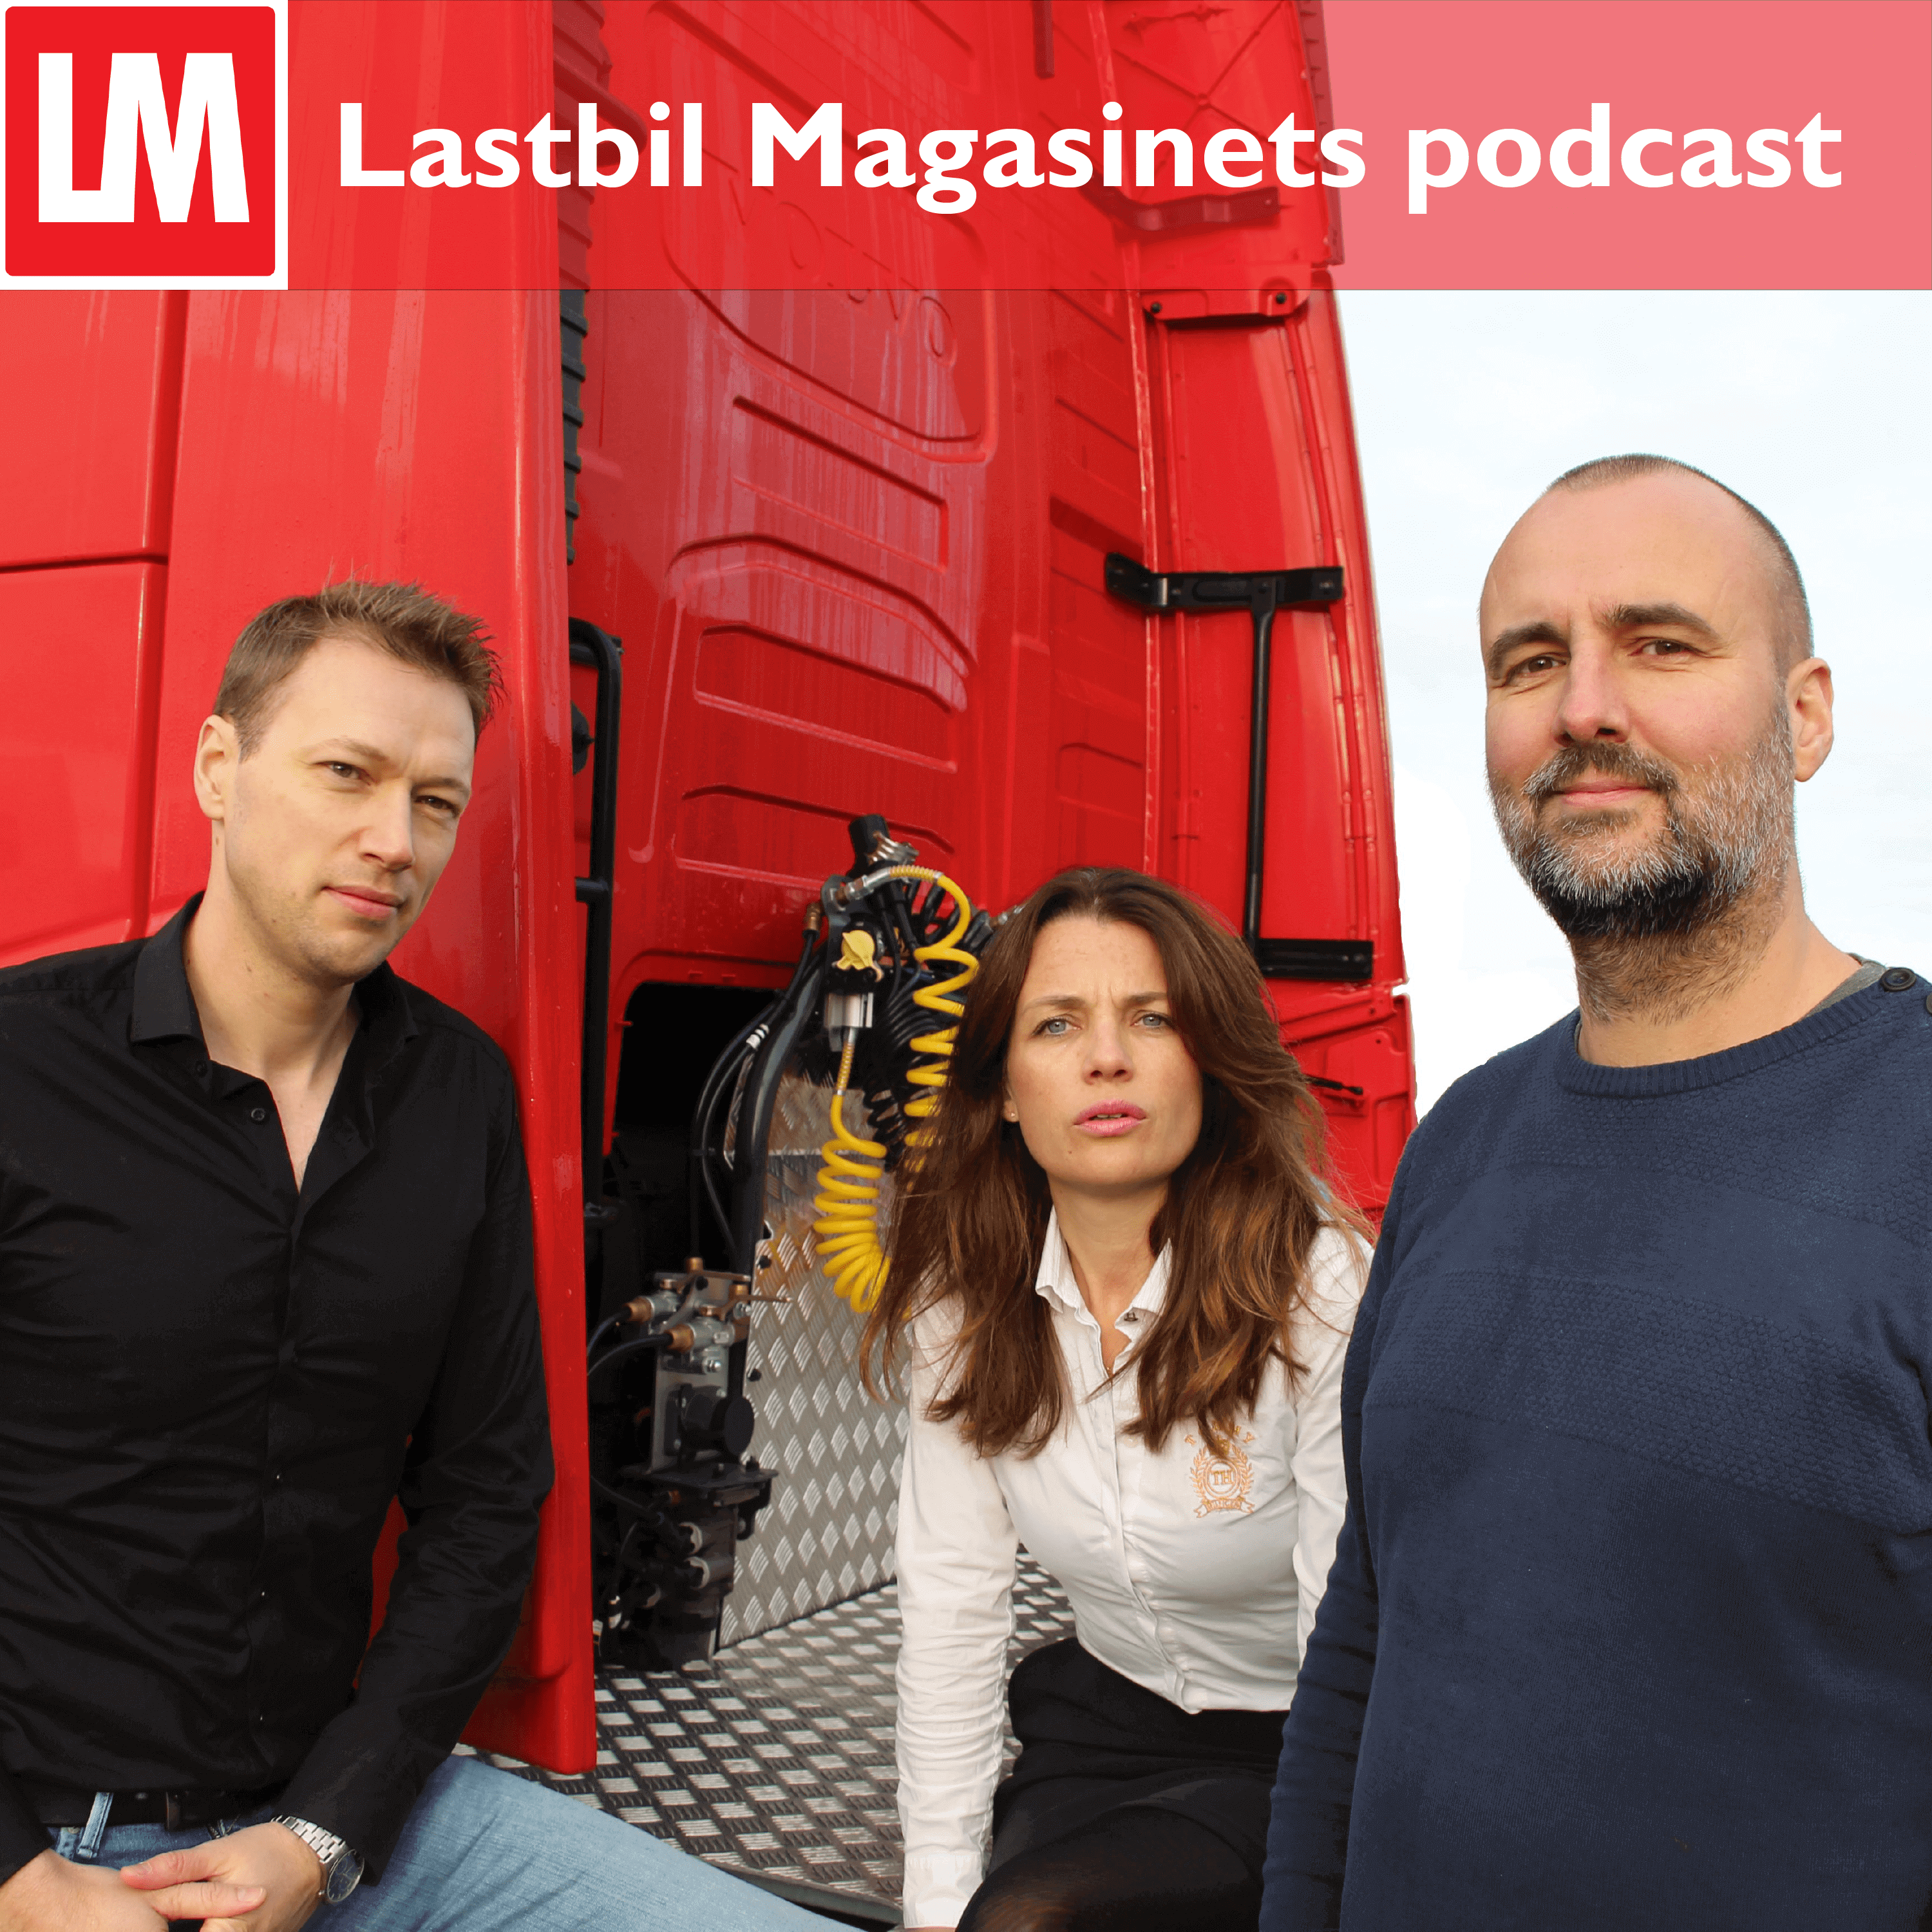 Lastbil Magasinet podcast